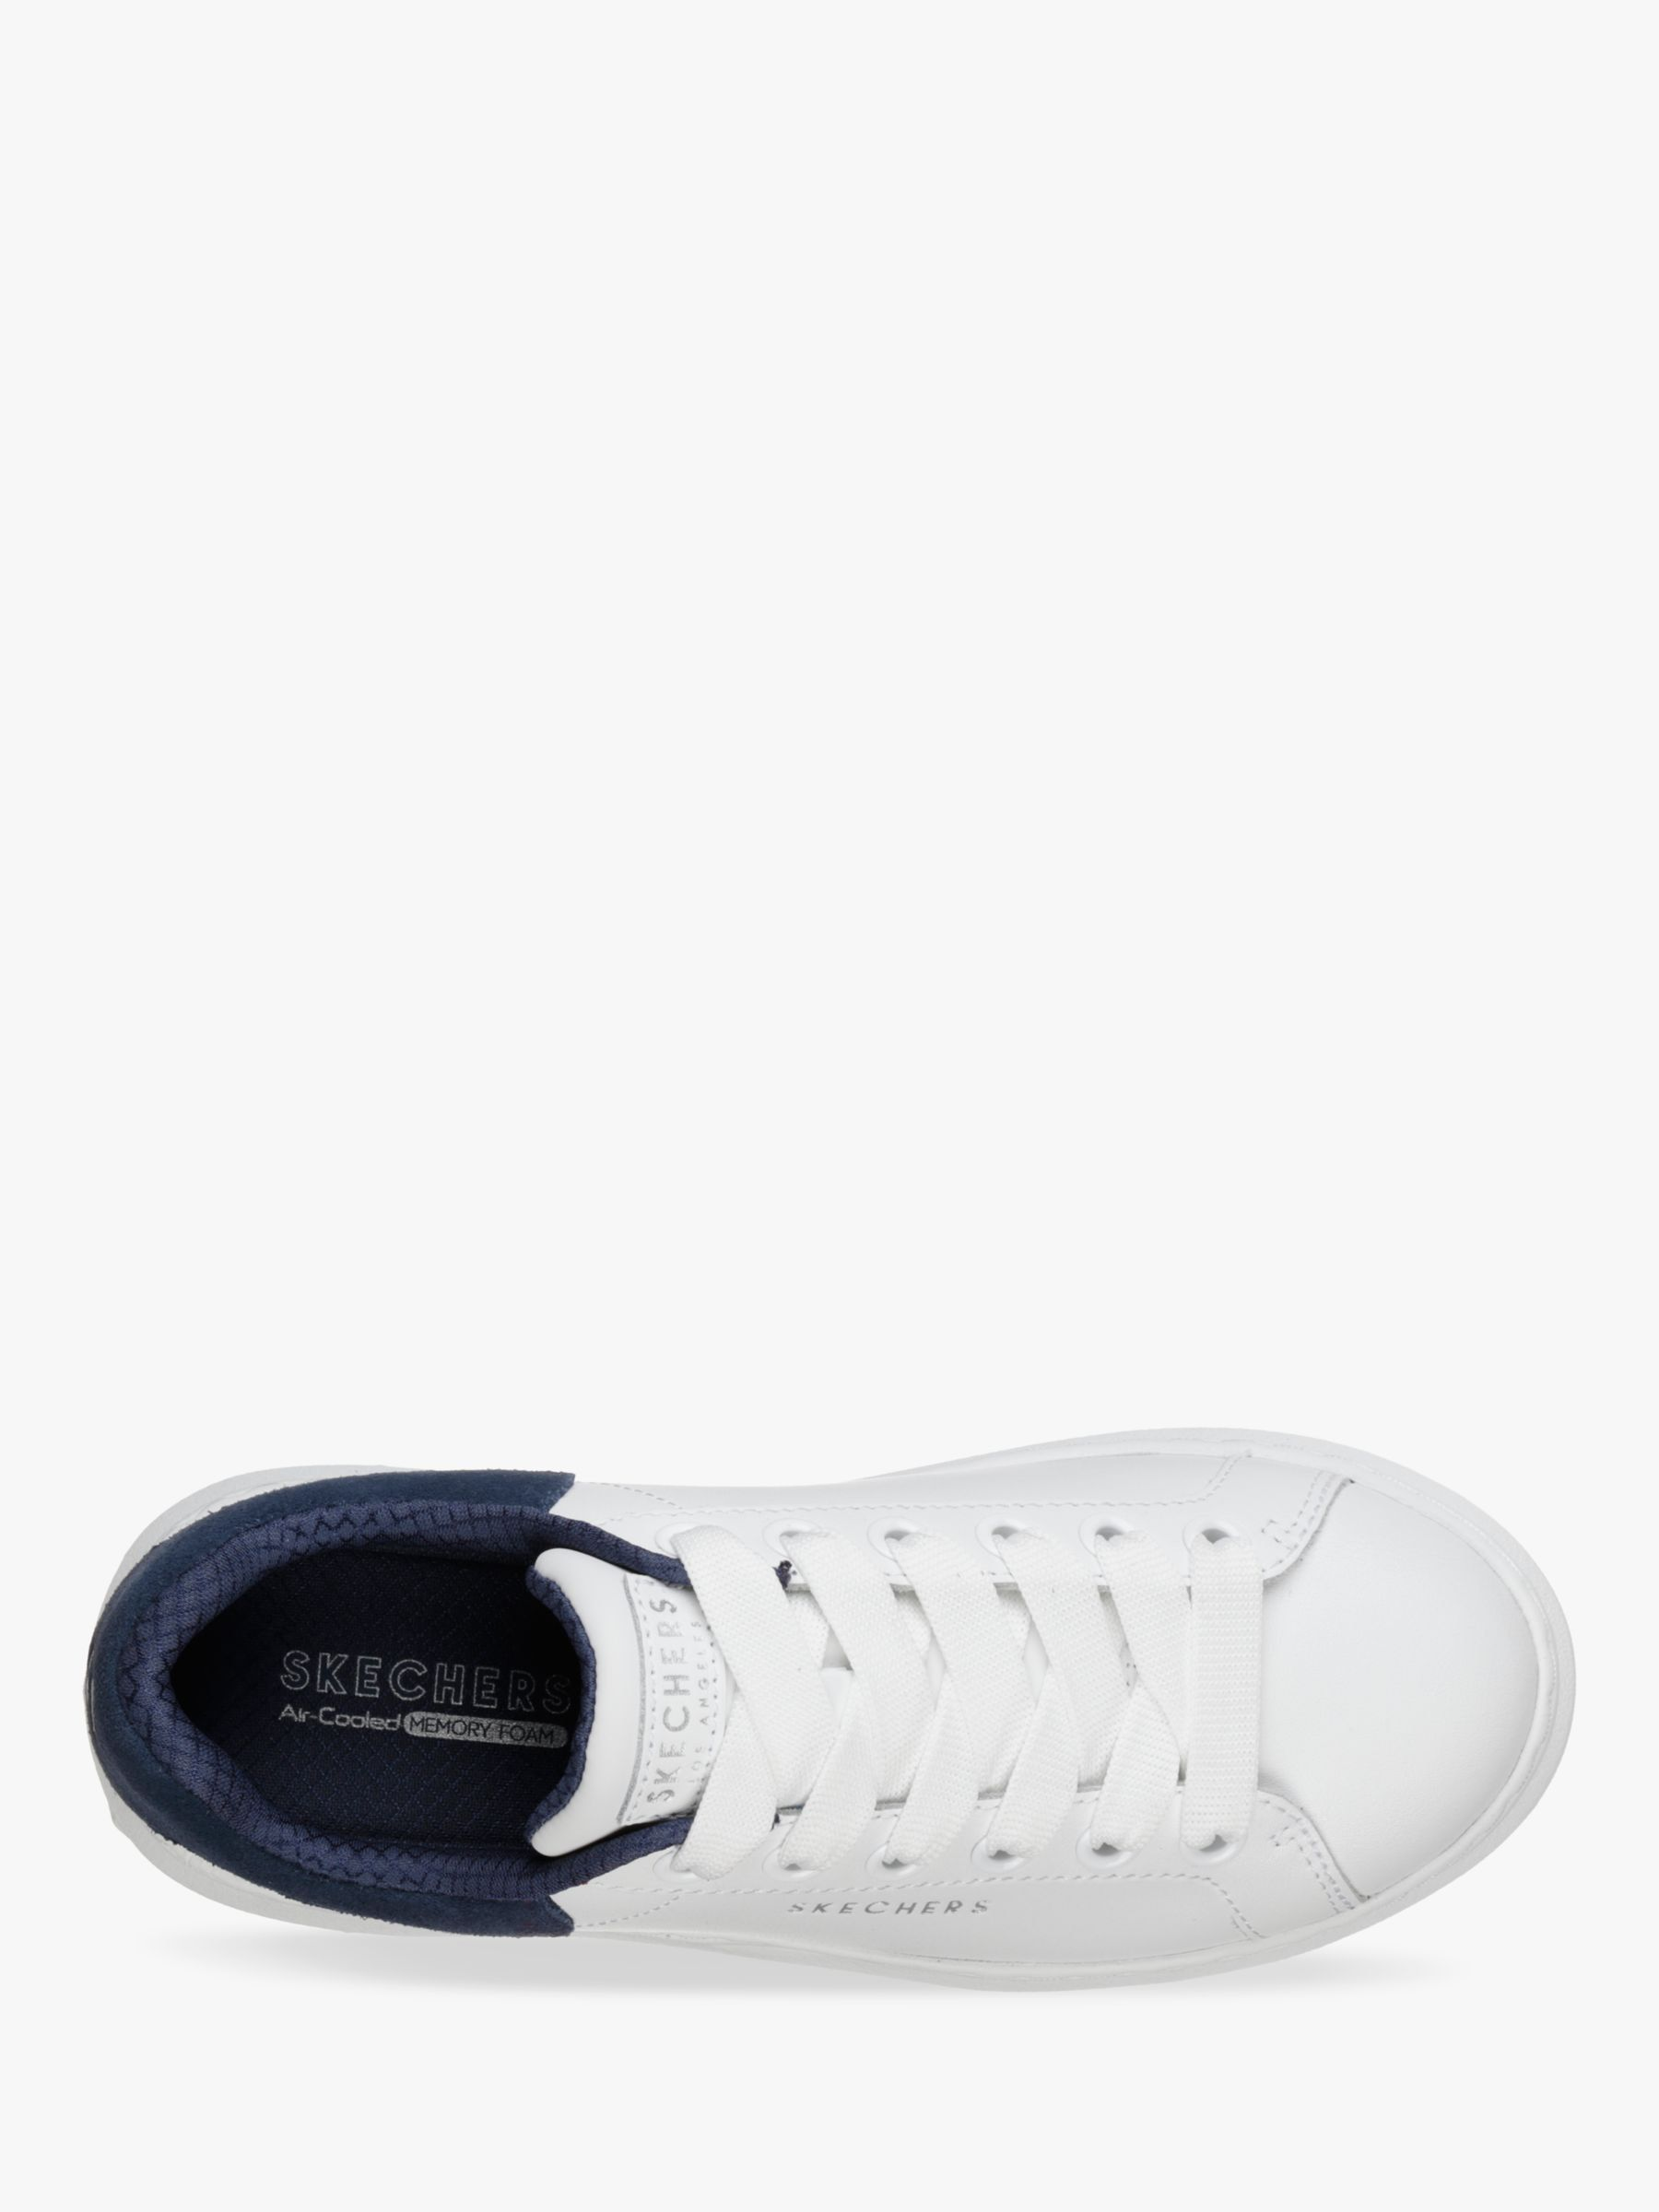 Skechers High Street Lace Up Trainers, WhiteNavy Leather